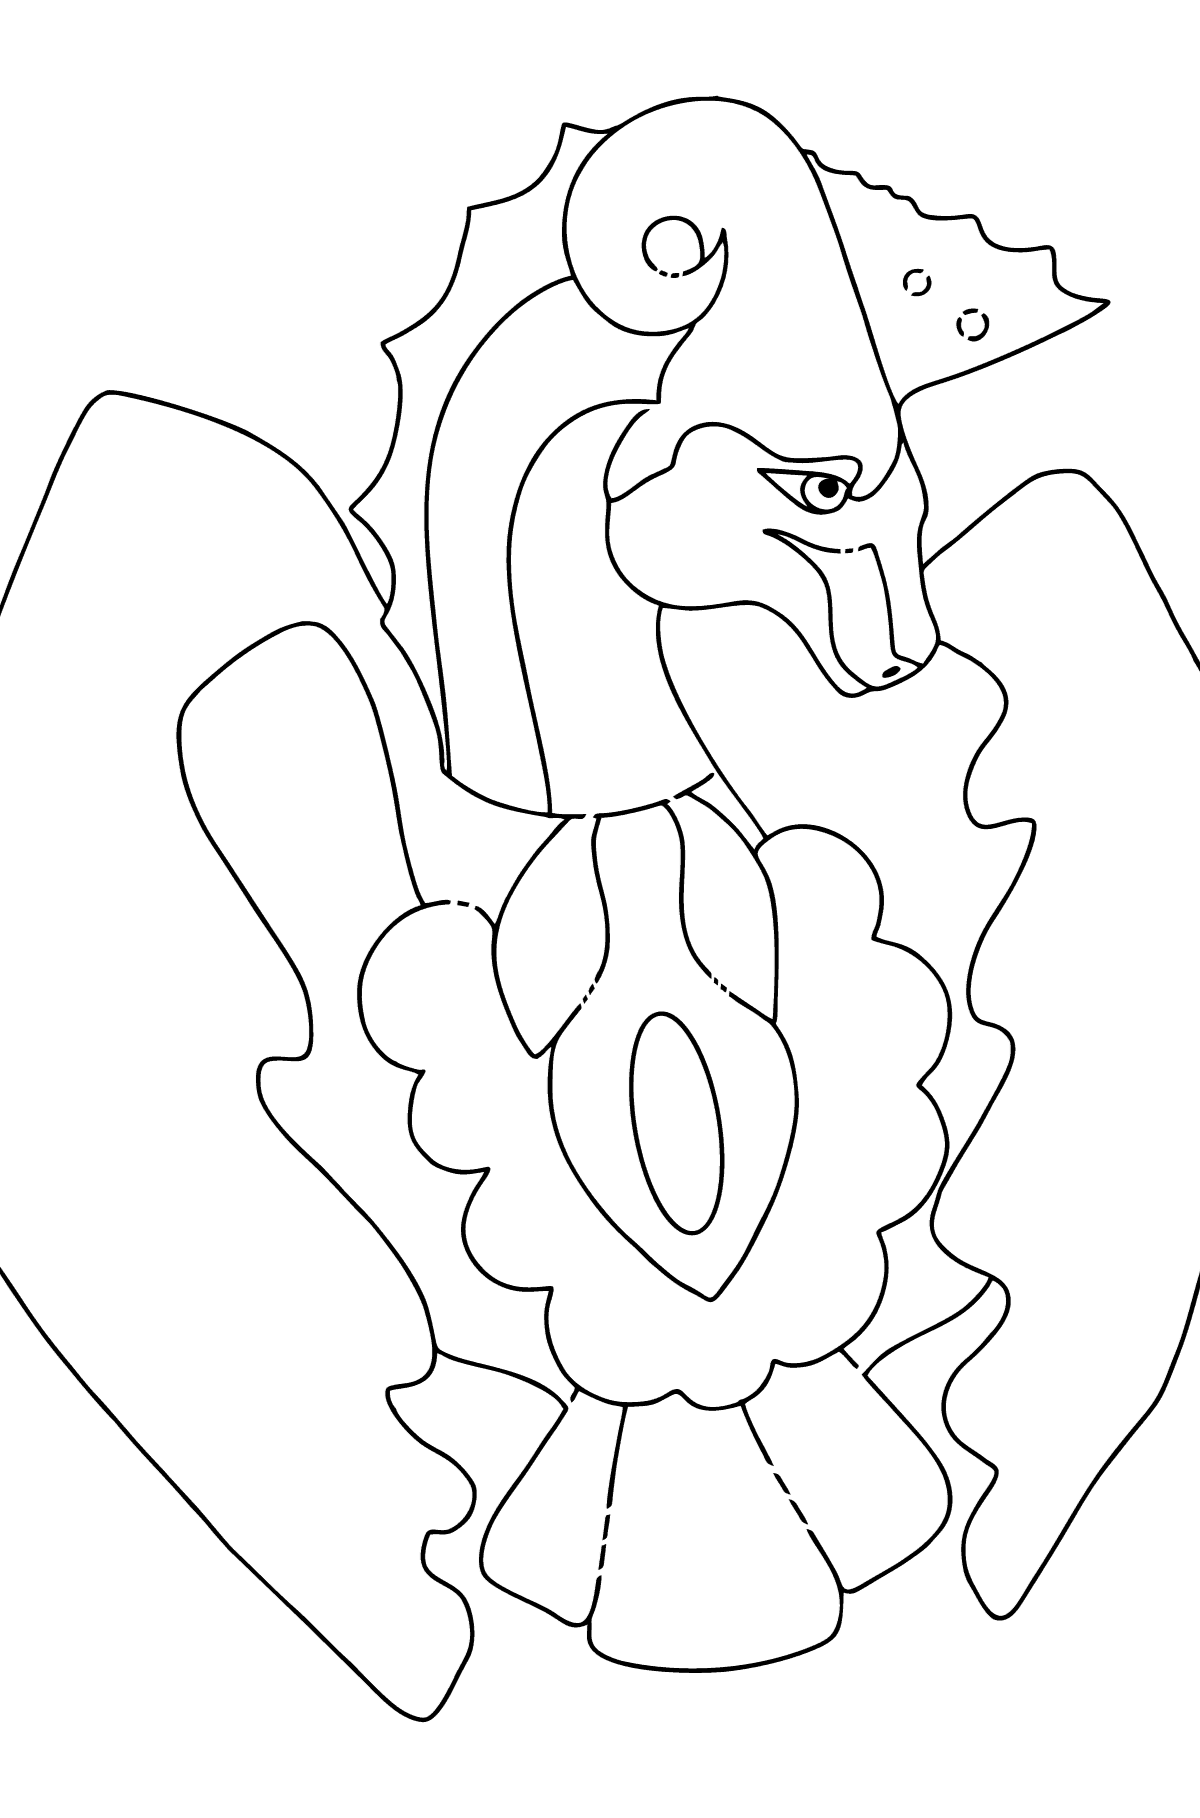 Coloring Page - A Dragon is Sad - Coloring Pages for Children